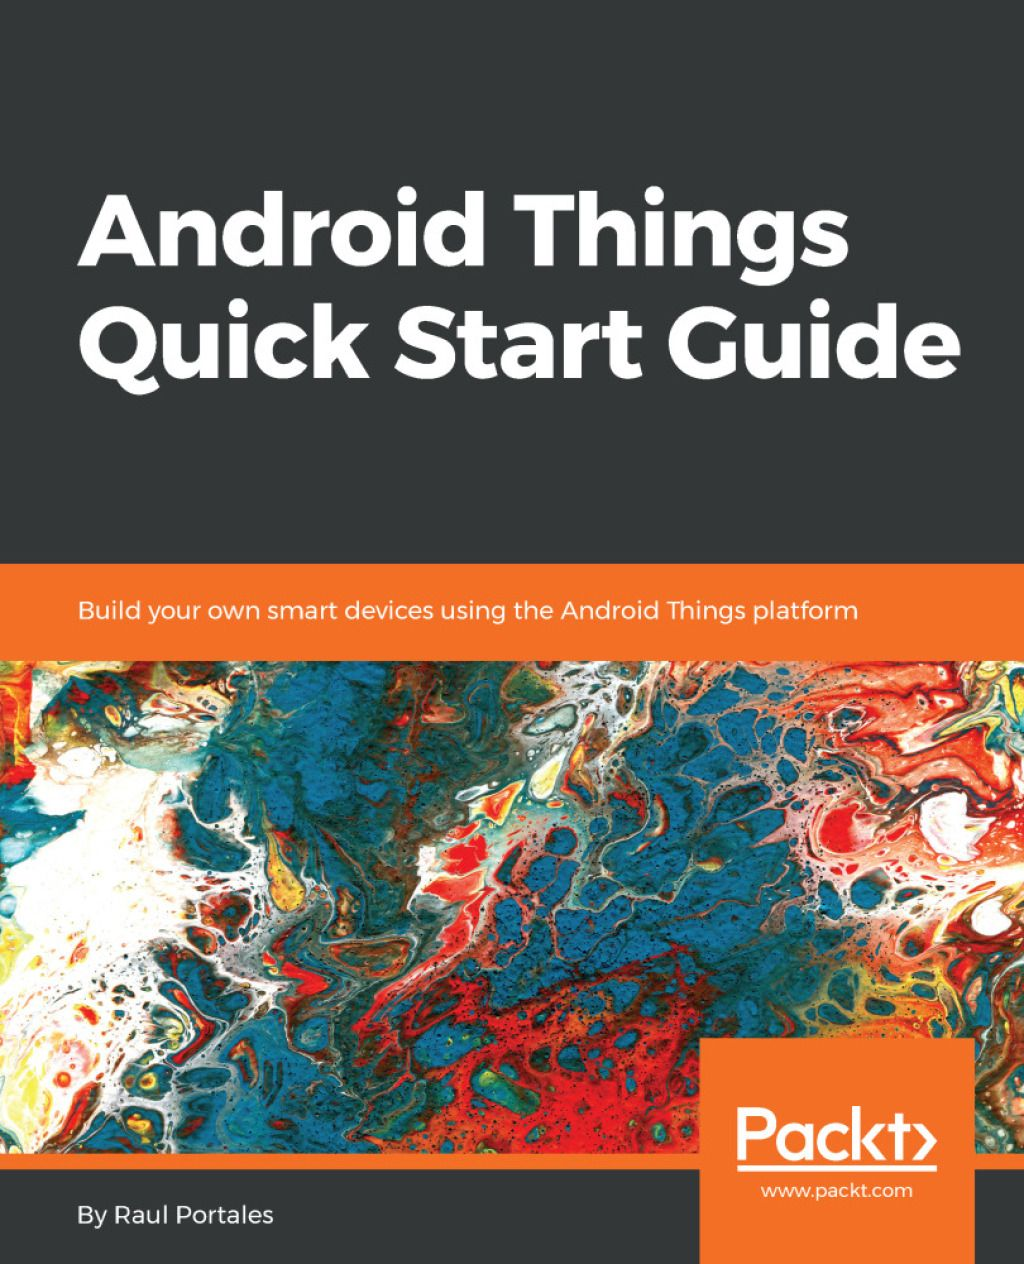 Android Things Quick Start Guide (eBook) #smartdevice